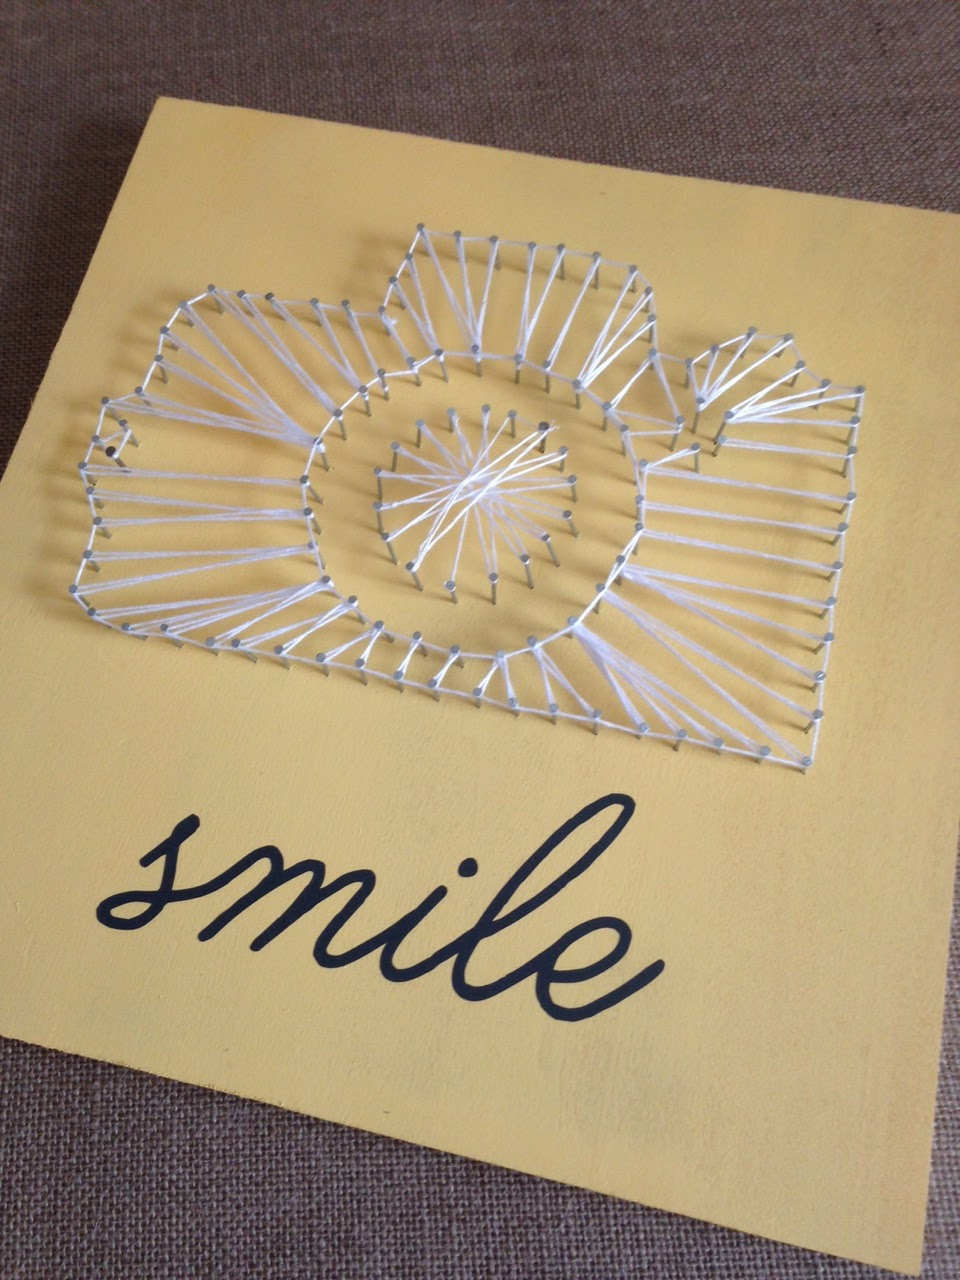 How to Make String Art Patterns with Silhouette - Silhouette School